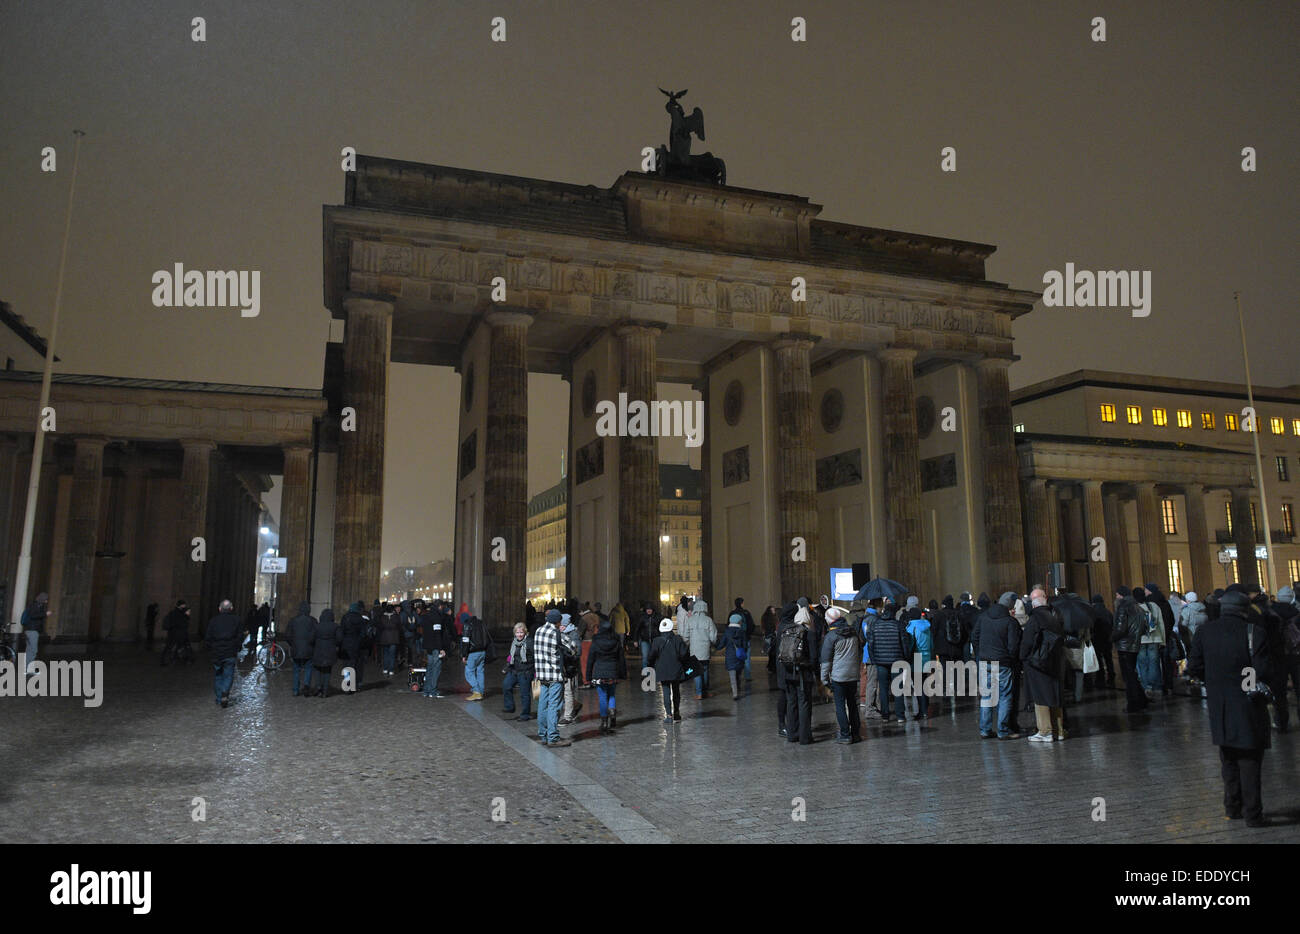 Berlin, Germany. 5th Jan, 2015. Pedestrians walk underneath the unlit Brandenburg Gate in Berlin, Germany, 5 January - Stock Image